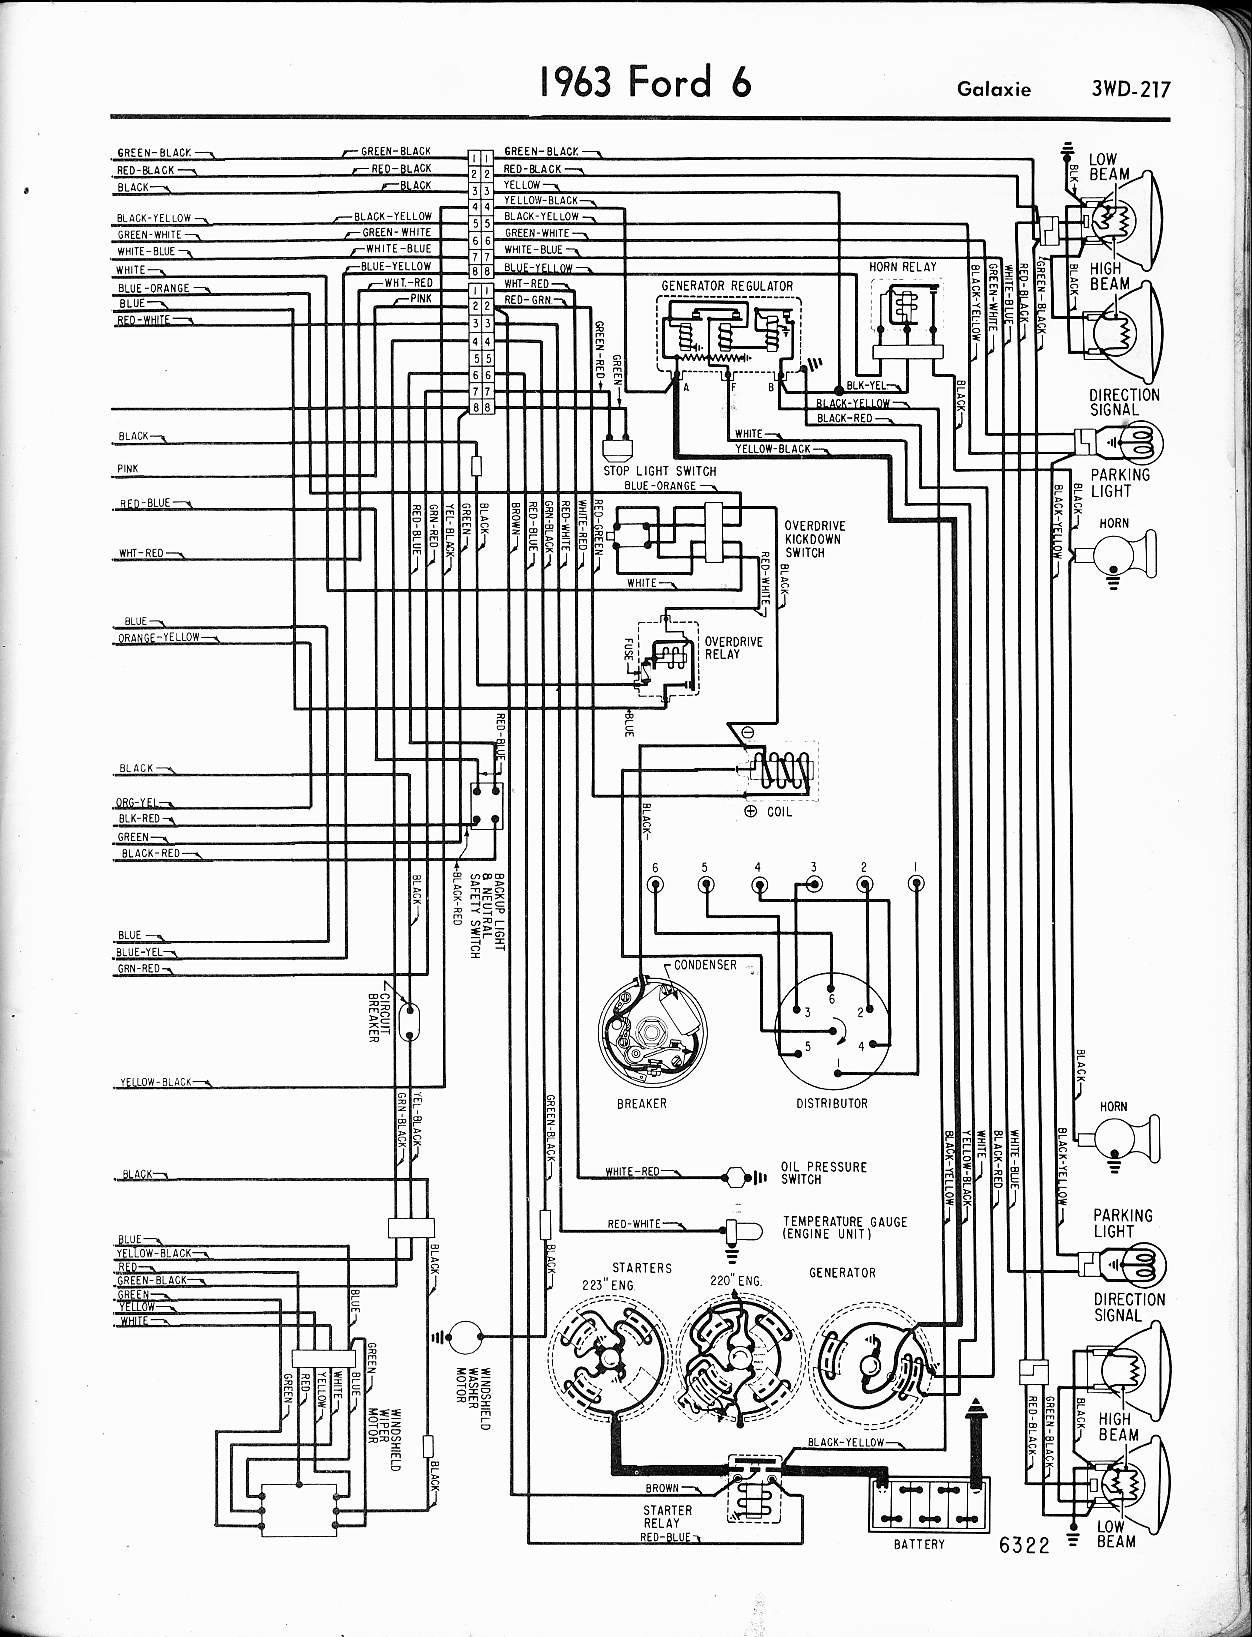 Headlight Switch Wiring Diagram Fairlane